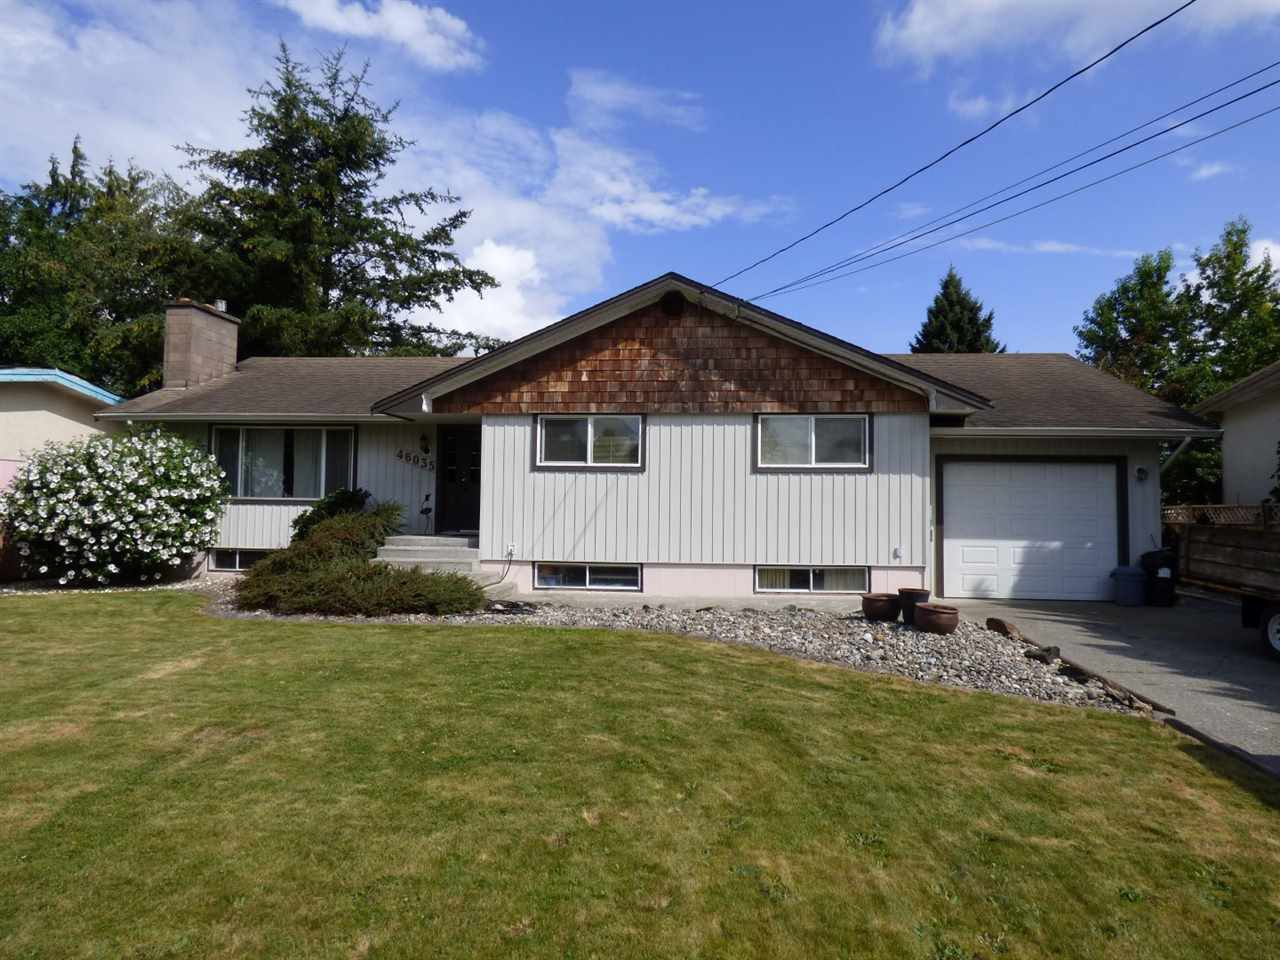 Main Photo: 46035 Avalon Avenue in Chilliwack: Fairfield Island House for sale